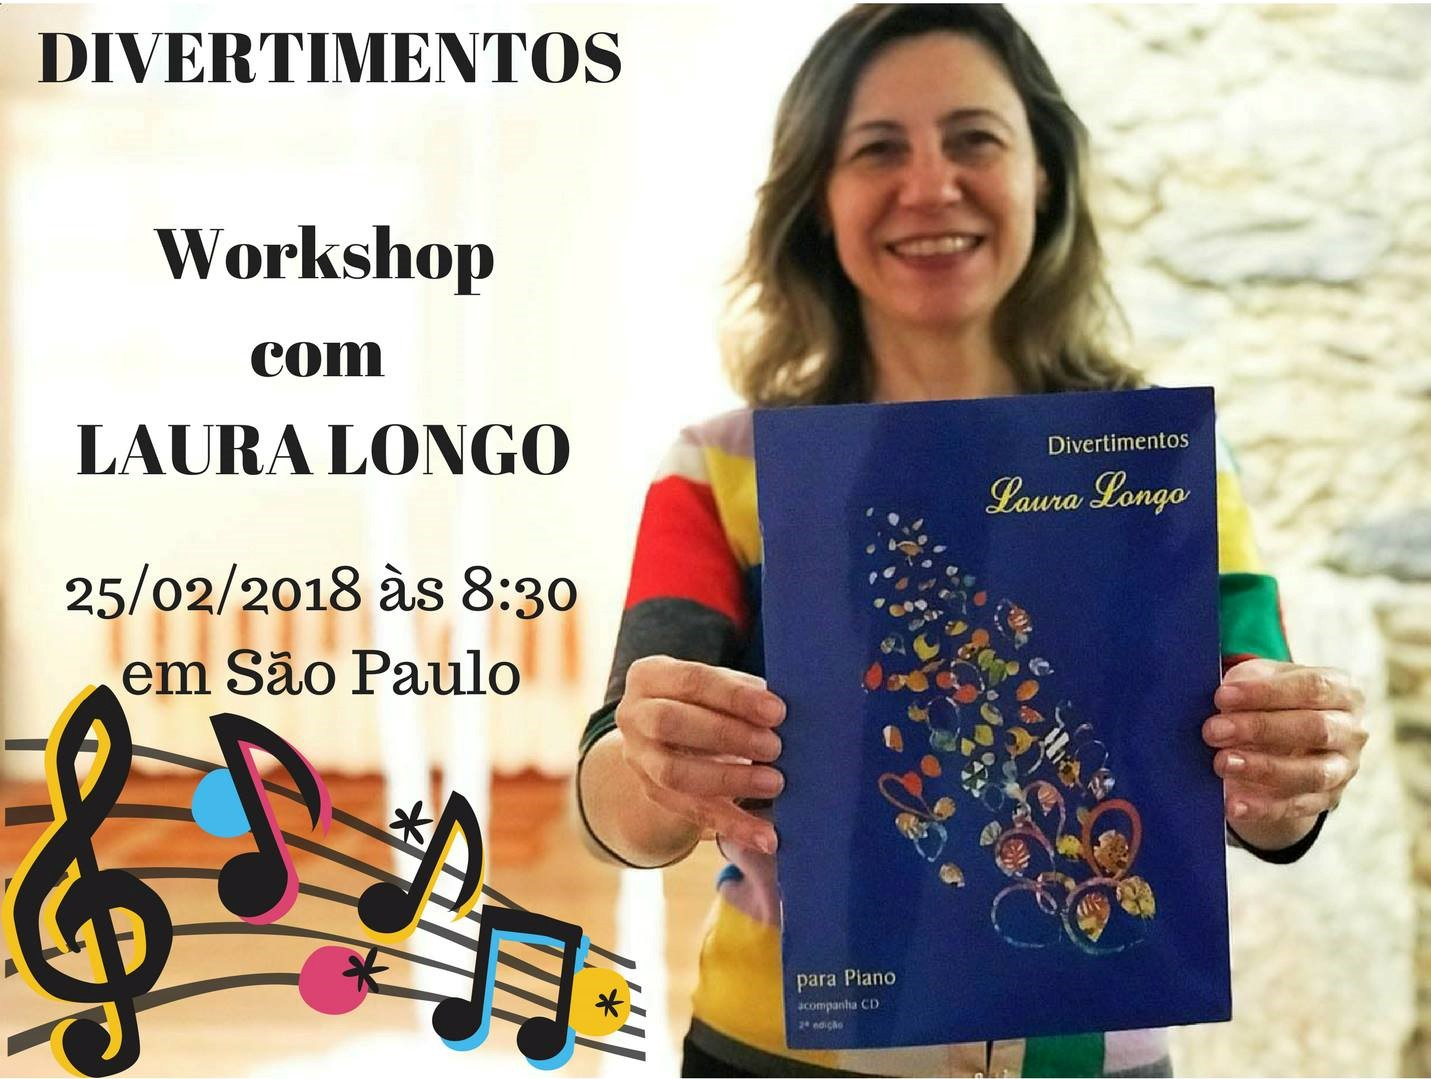 lauralongo-workshop-divertimentos-jan2018